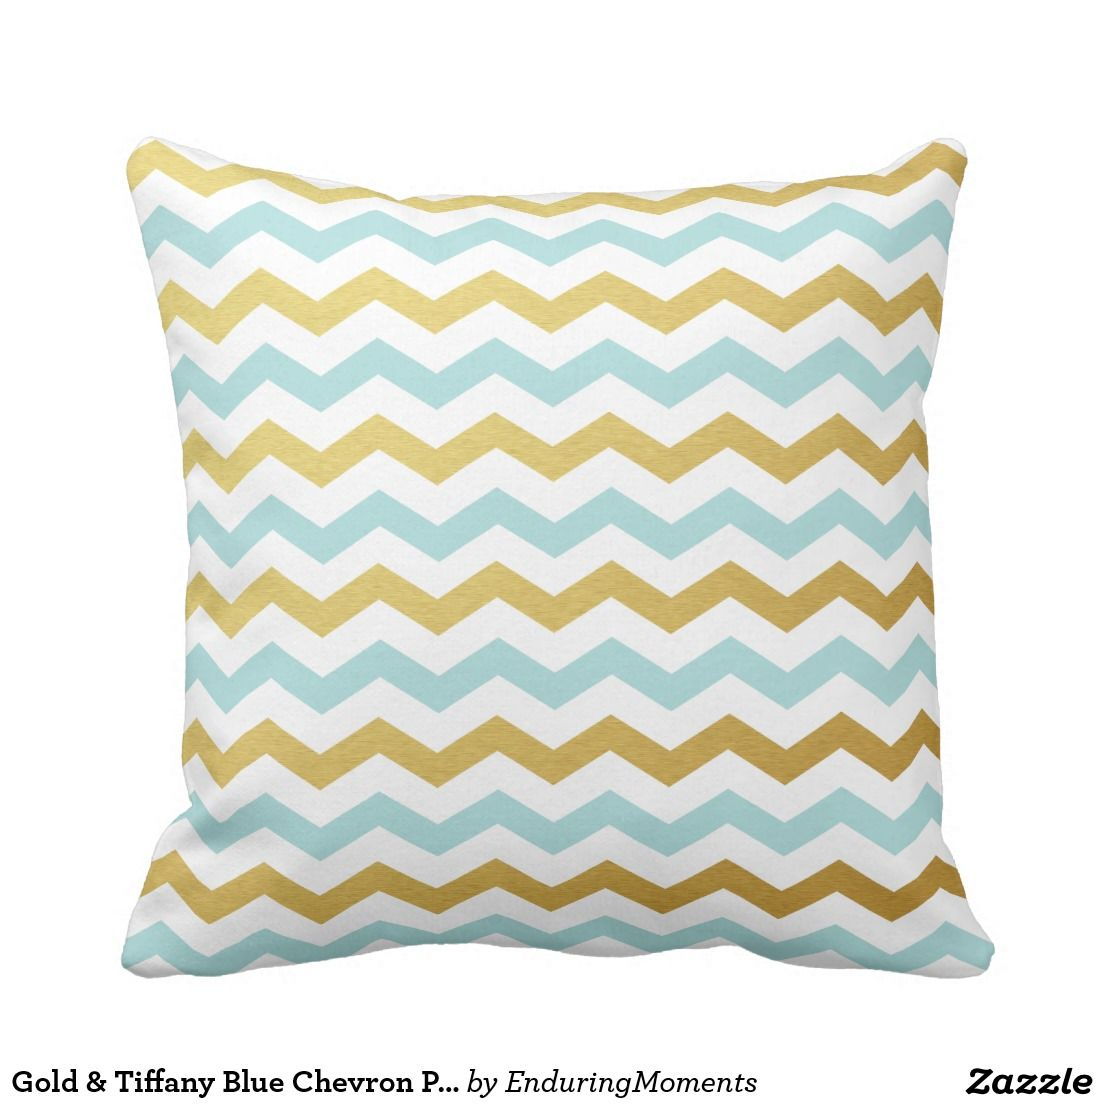 Decorative Pillows In Tiffany Blue : Gold & Tiffany Blue Chevron Pattern Throw Pillows